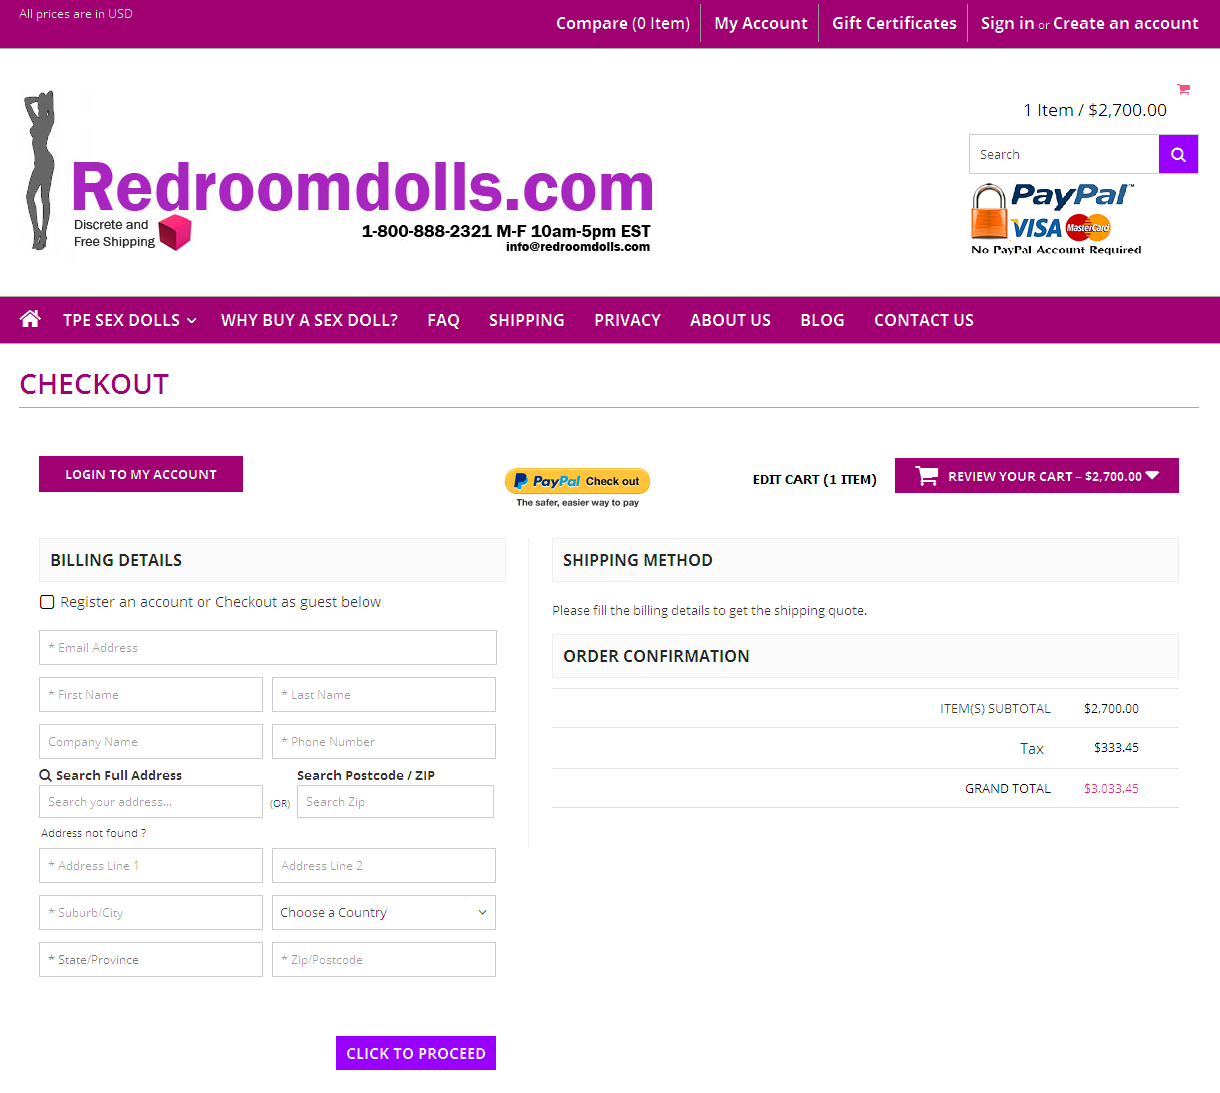 Bigcommerce One Step Checkout In redroomdoll